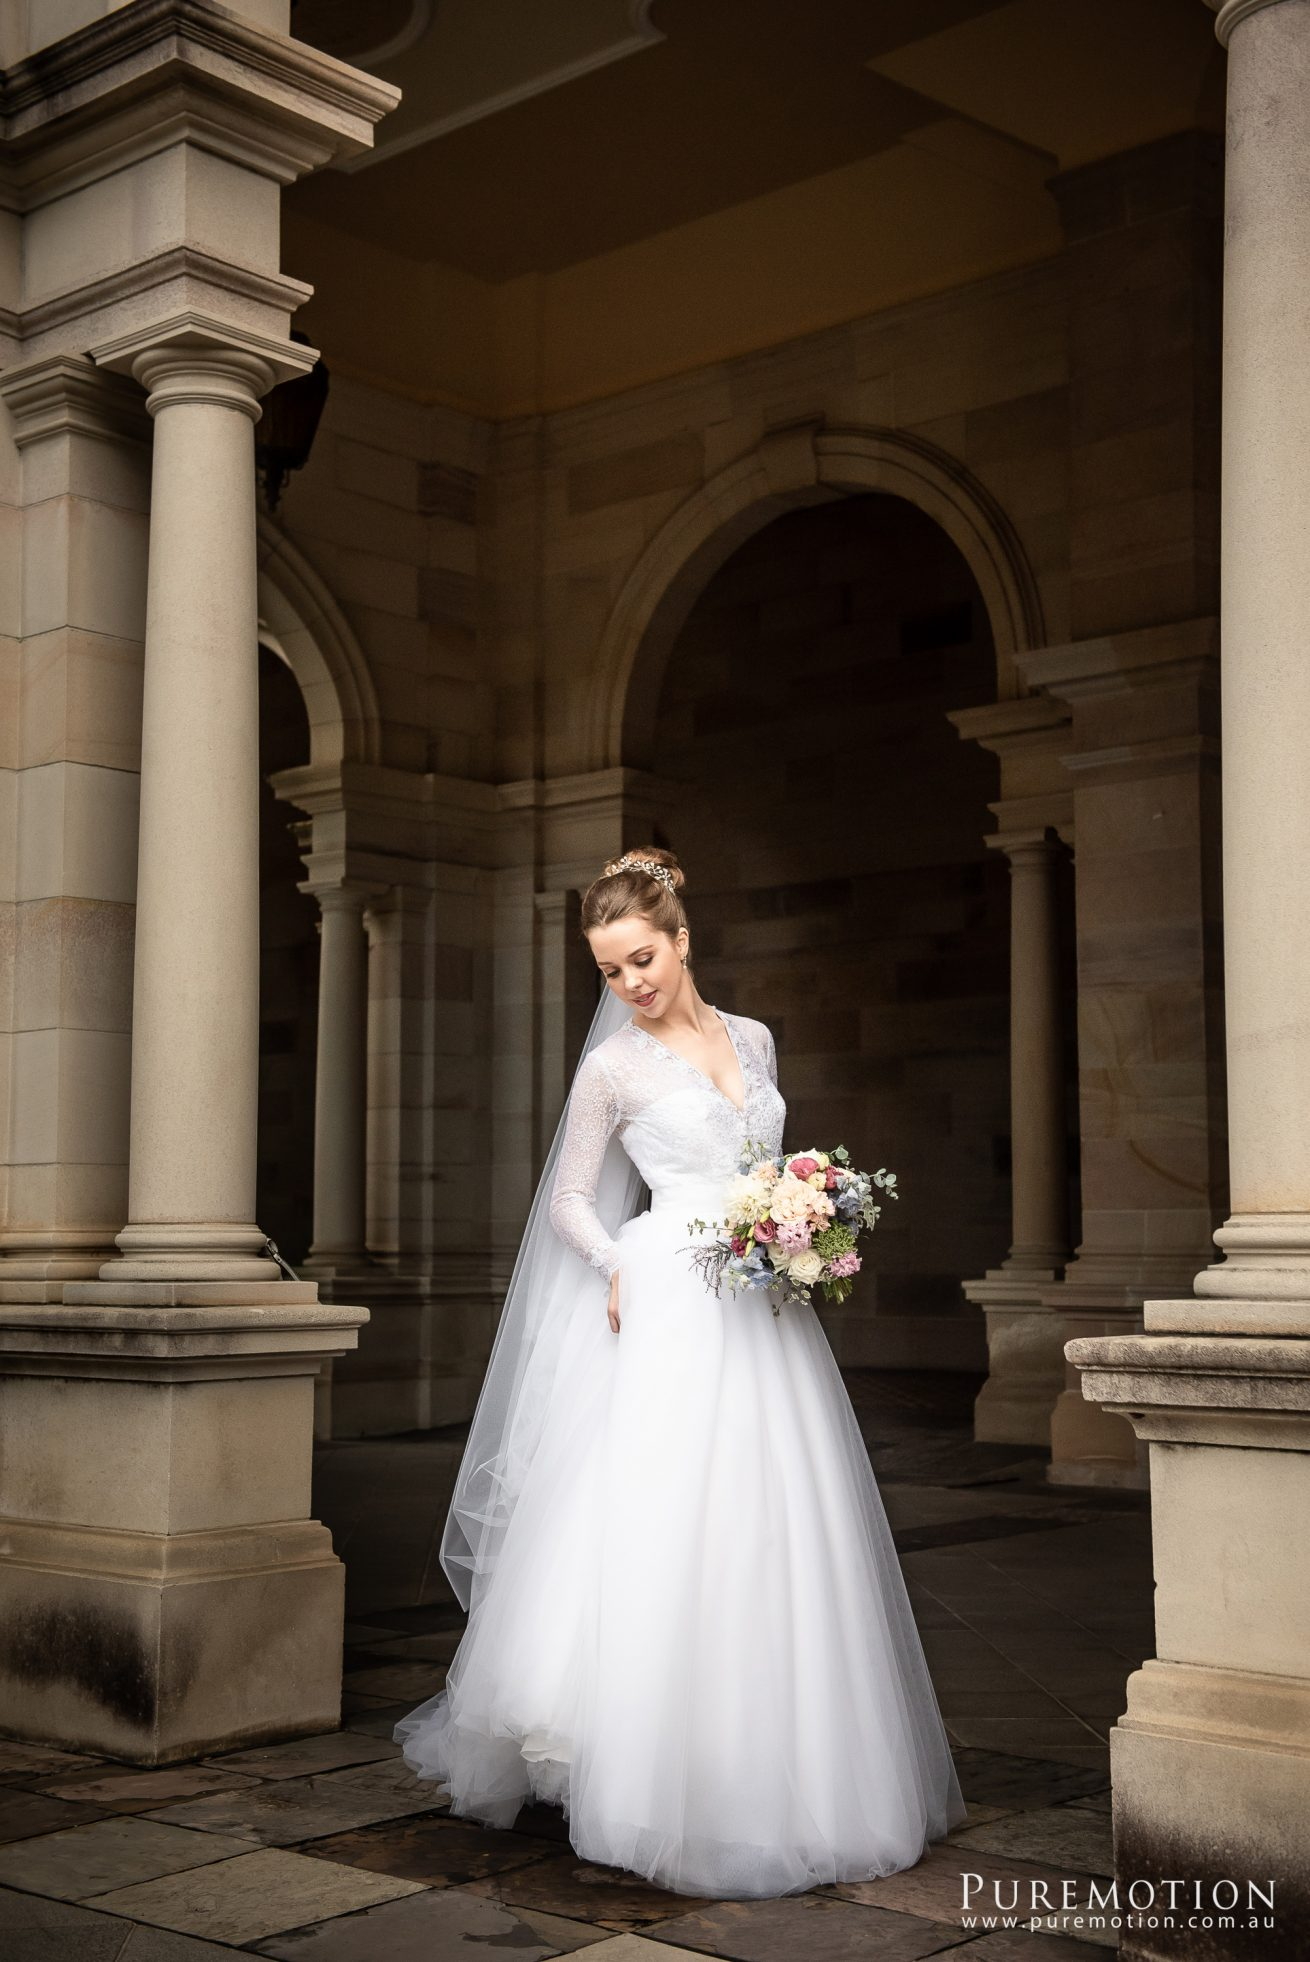 190517 Puremotion Wedding Photography Alex Huang Brisbane EmmaBen-0055